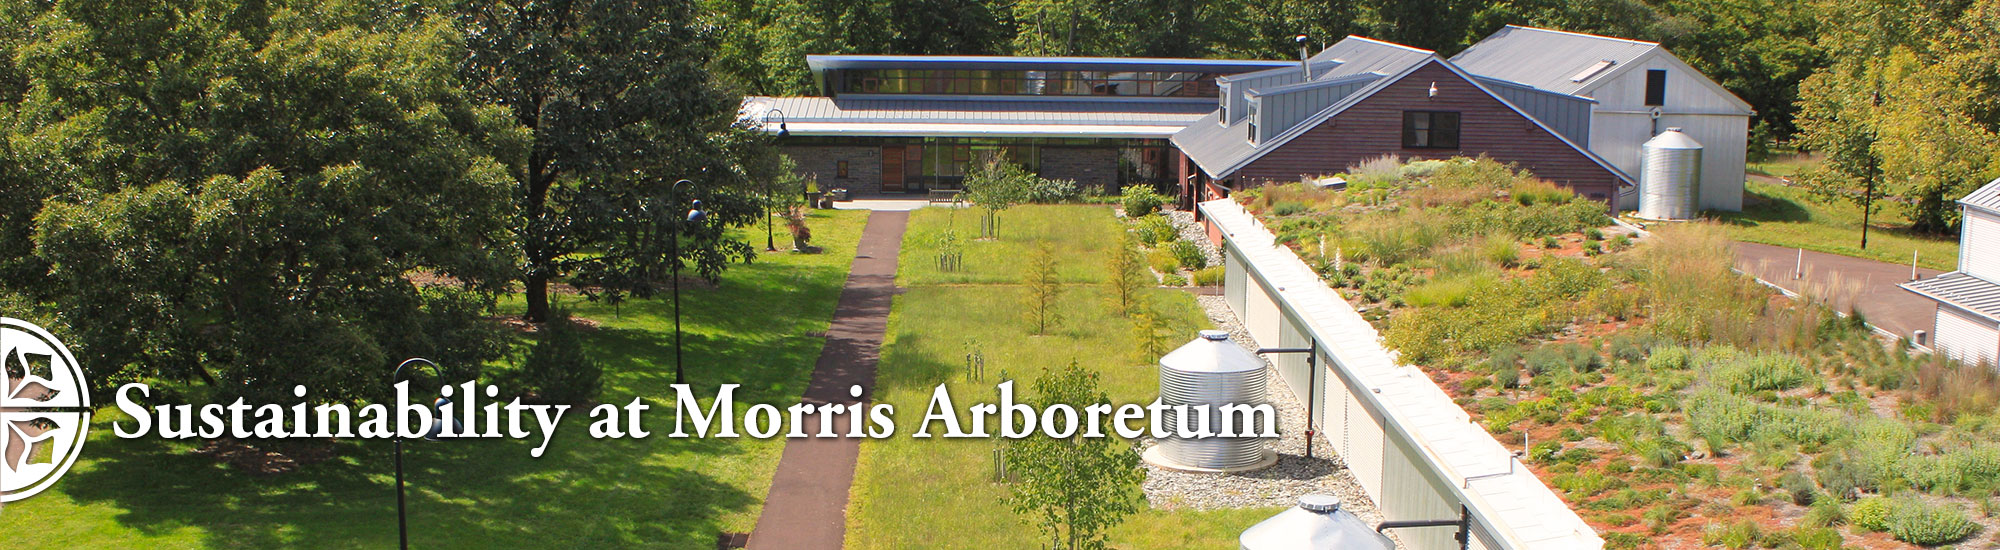 Sustainability at Morris Arboretum